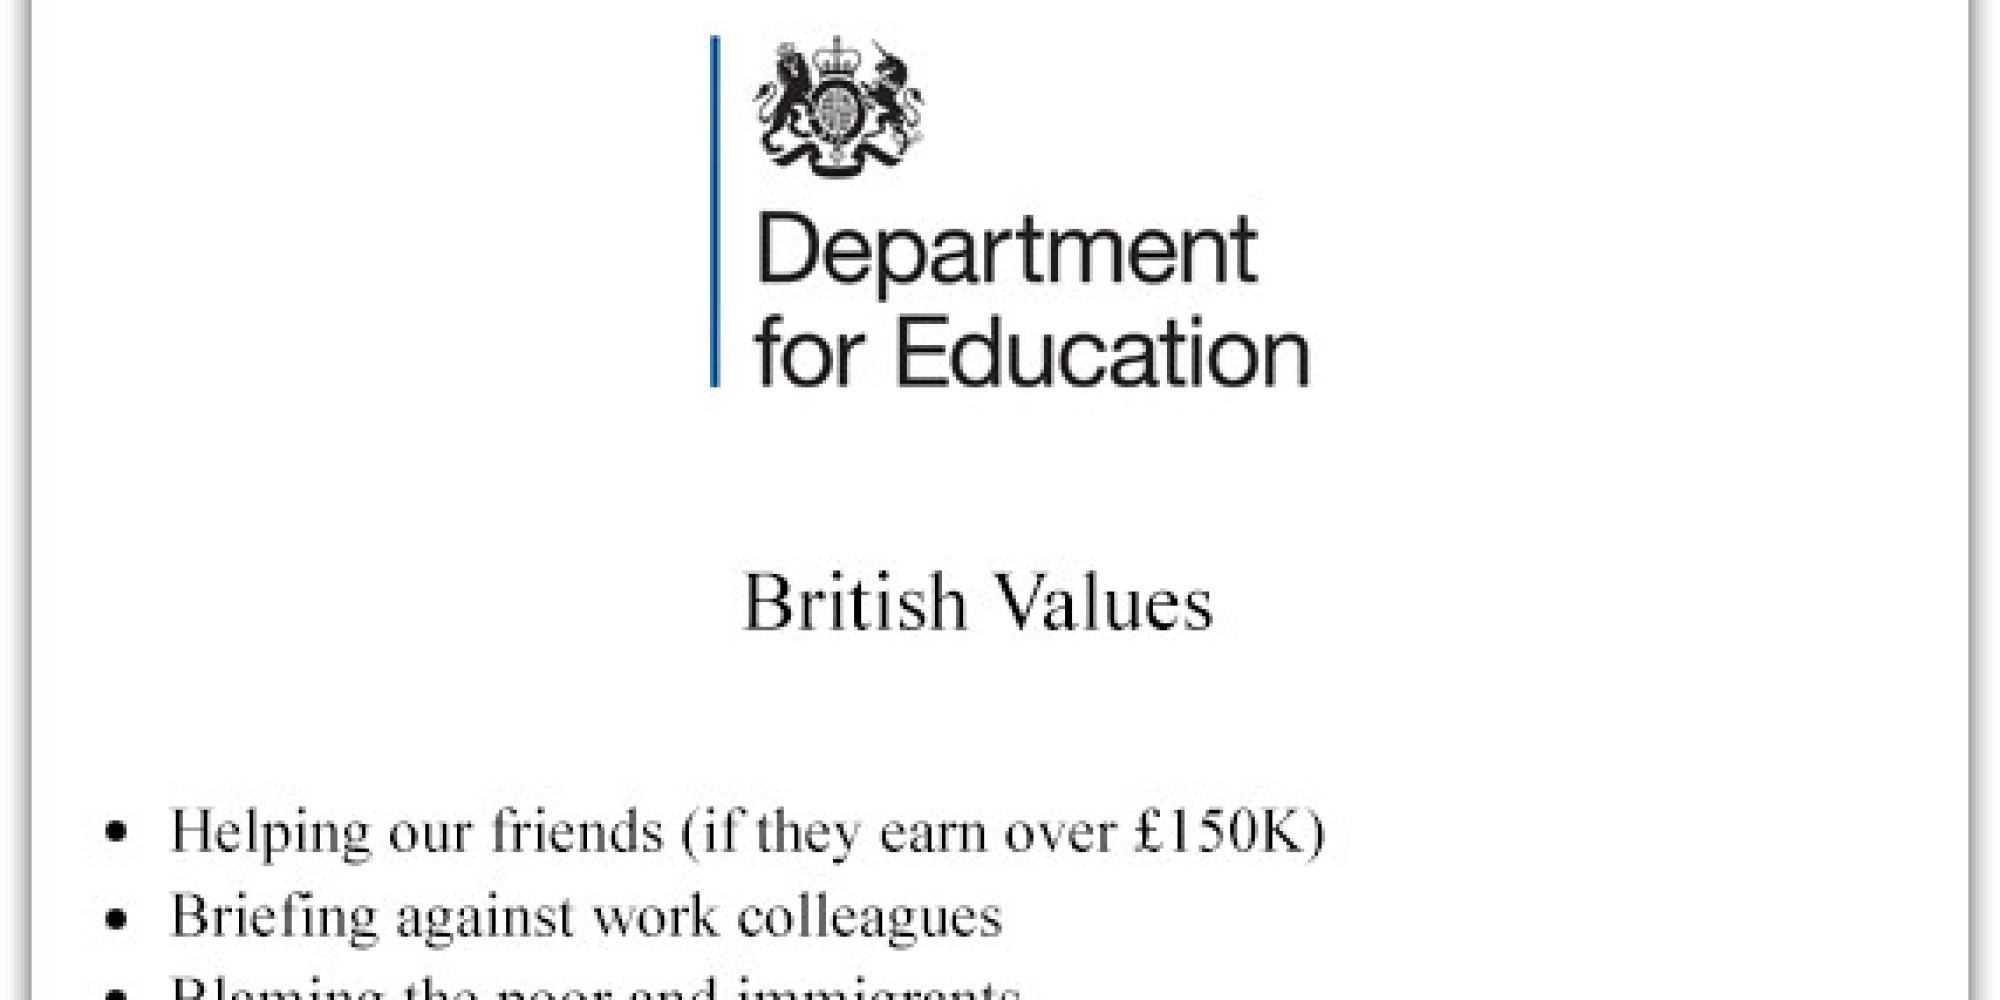 michael gove s british values revealed in government memo michael gove s british values revealed in government memo picture the huffington post